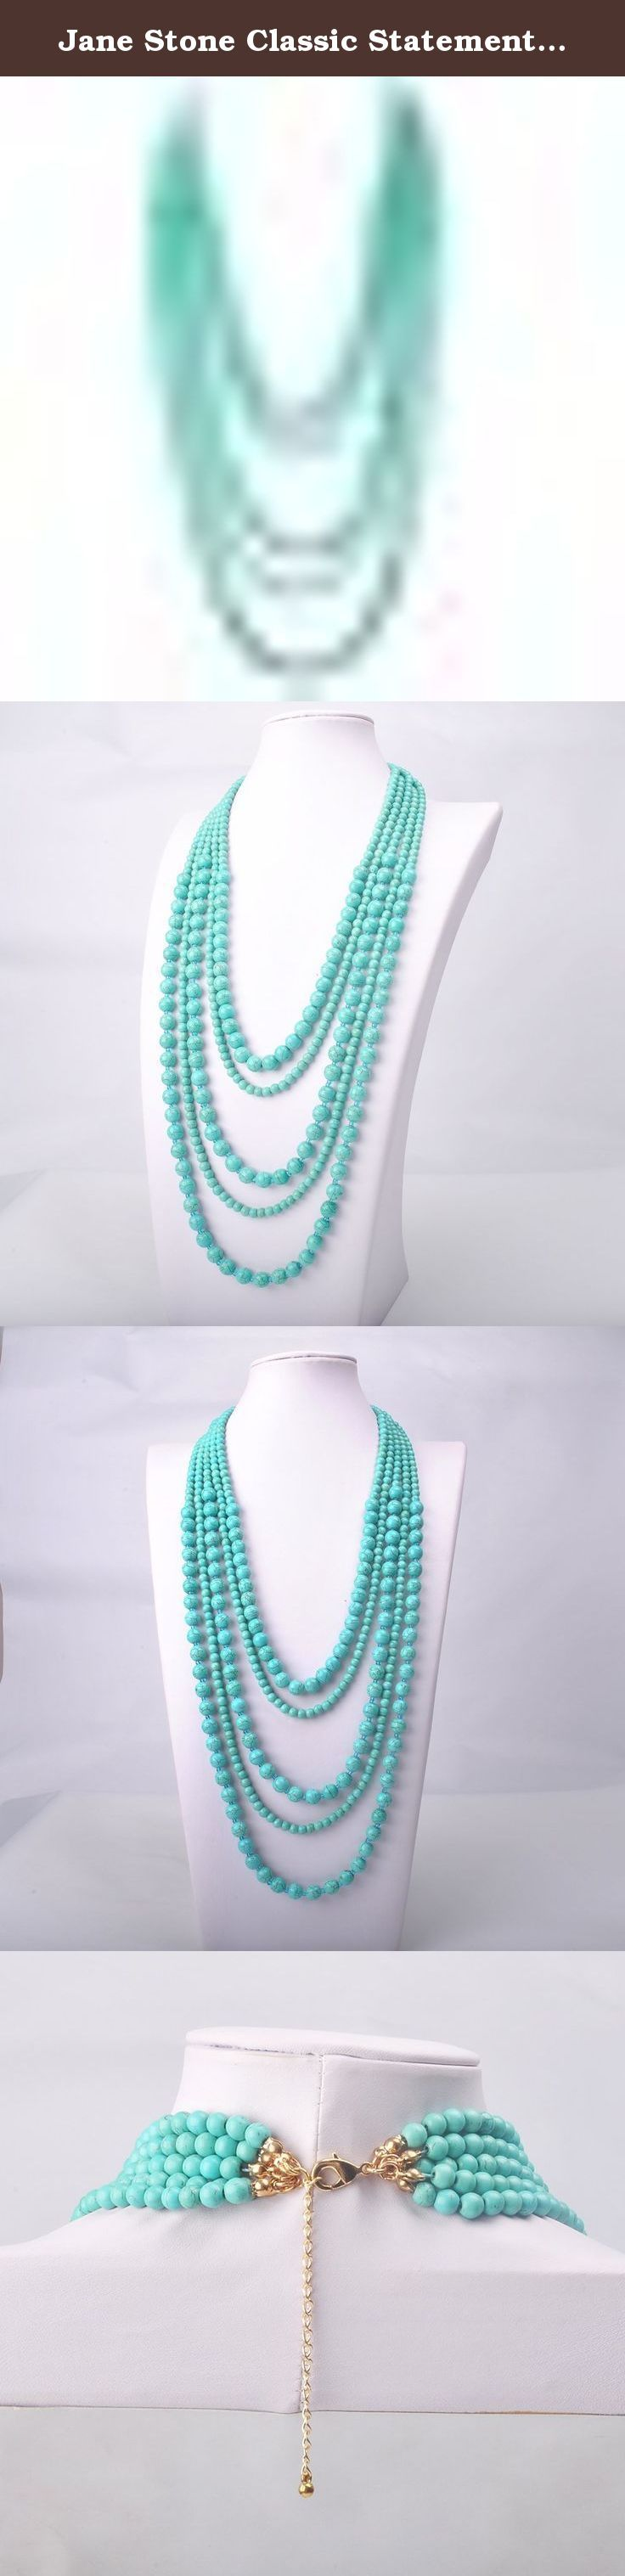 Jane Stone Classic Statement Blue Turquoise Bead Multi Strand Layered Bib Necklace Aqua Chunky Multi Rows Party Jewelry for Women Elegant(Fn0728). Jane Stone was established in 2009, and is dedicated to be the most prestigious statement jewelry provider in the world. Jane Stone offers the finest quality semi-precious fashion jewelry, as well as all kinds of natural gemstones and pearl jewelry.